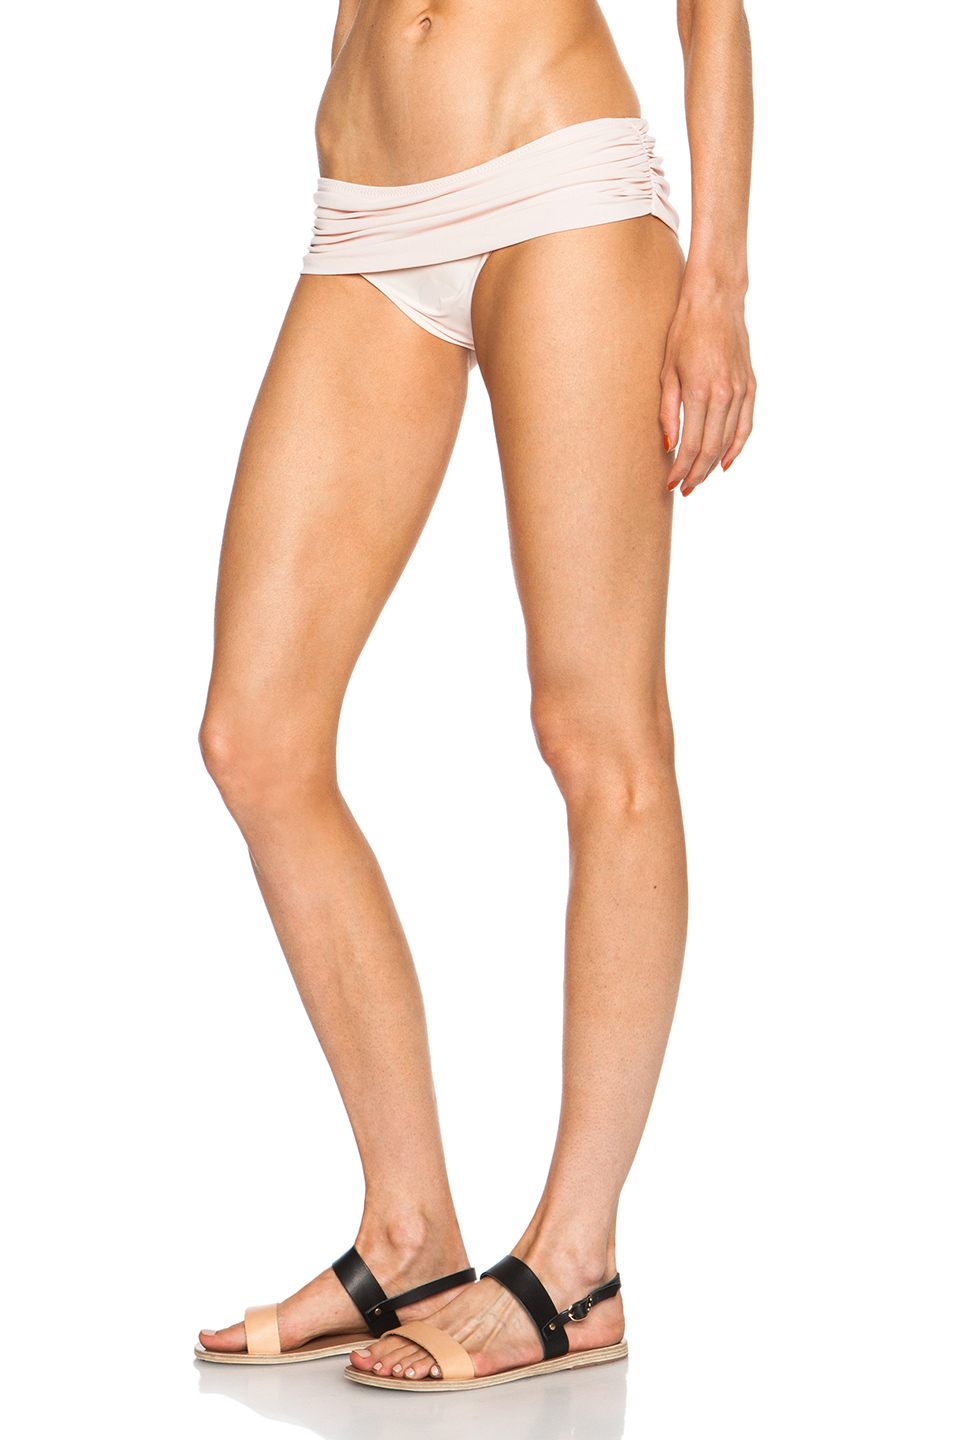 Low-rise bikini bottoms which are low at the front, usually on,.Making the super high-rise, above the hip bone, baywatch-style bikini bottom cut a ciproprescription.ga the popular bikini 'triangle', offering medium coverage at the back.